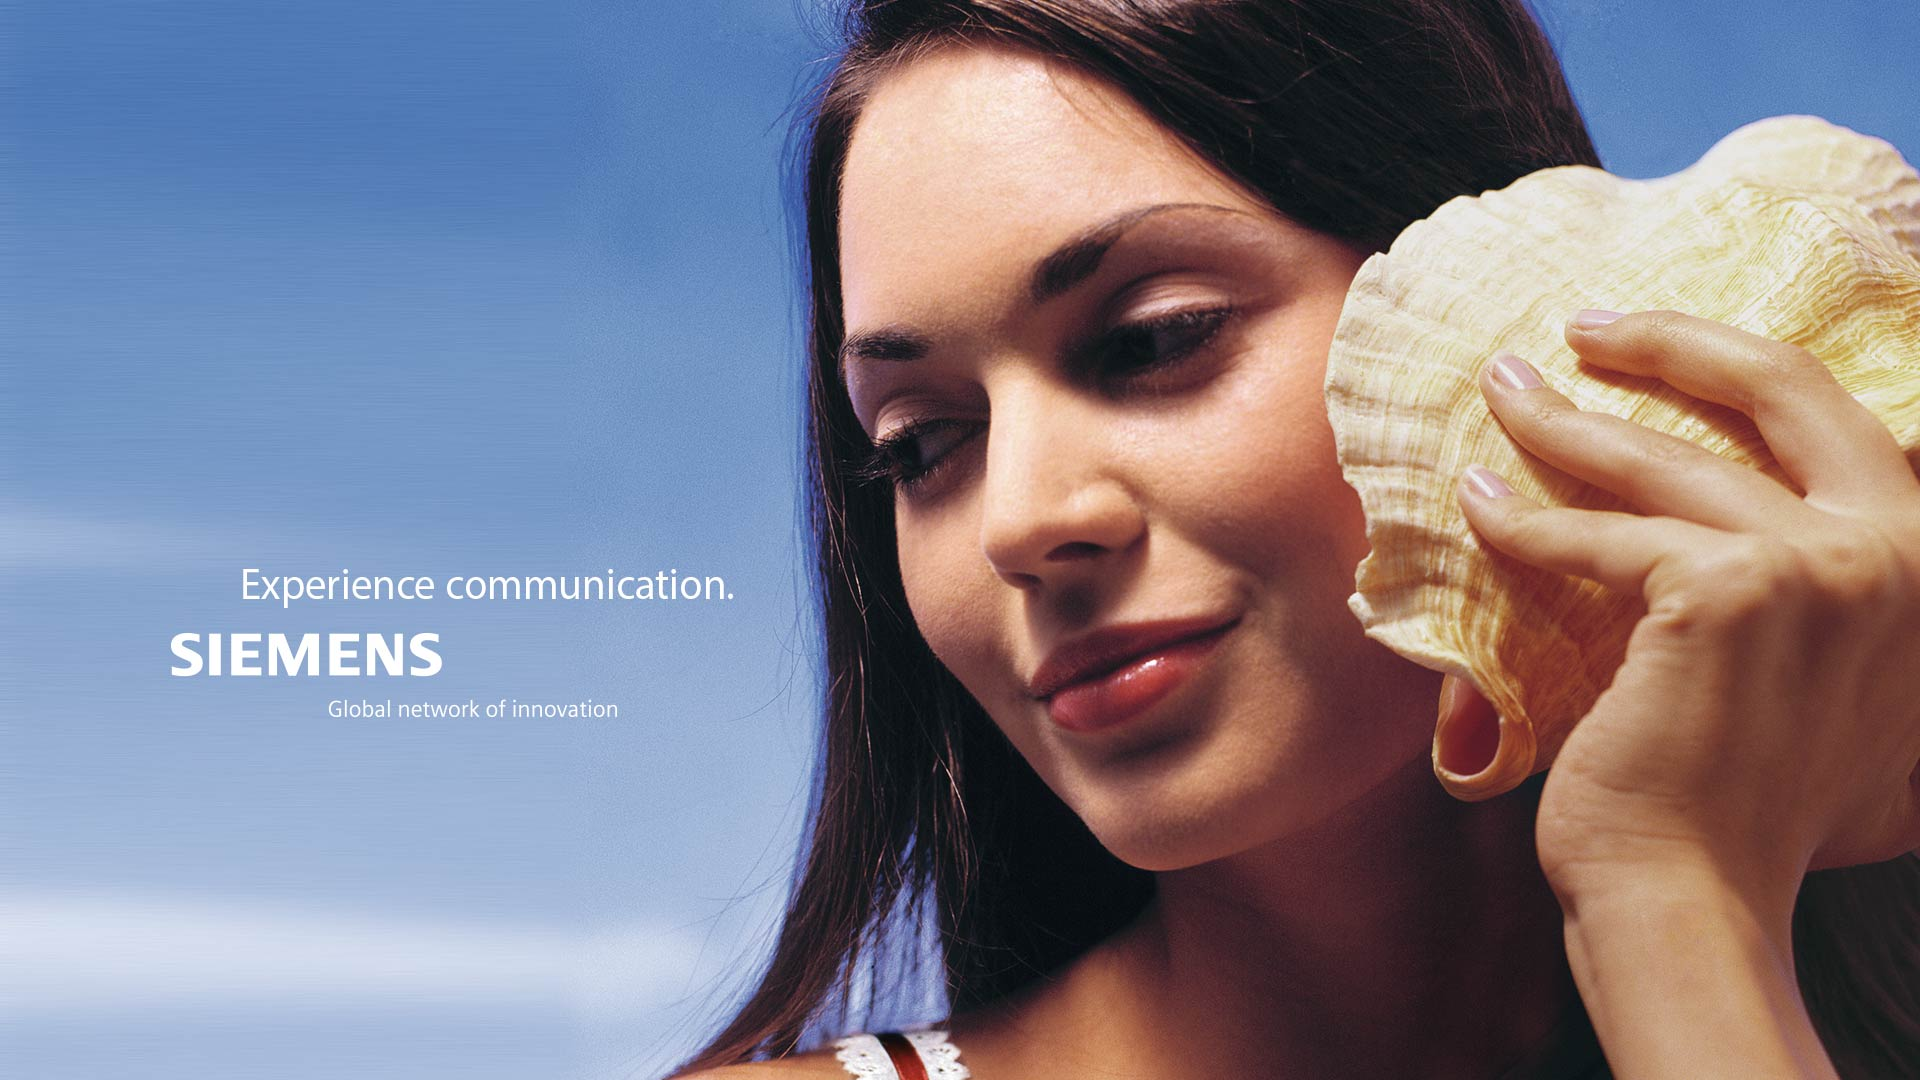 Siemens Experience Communication